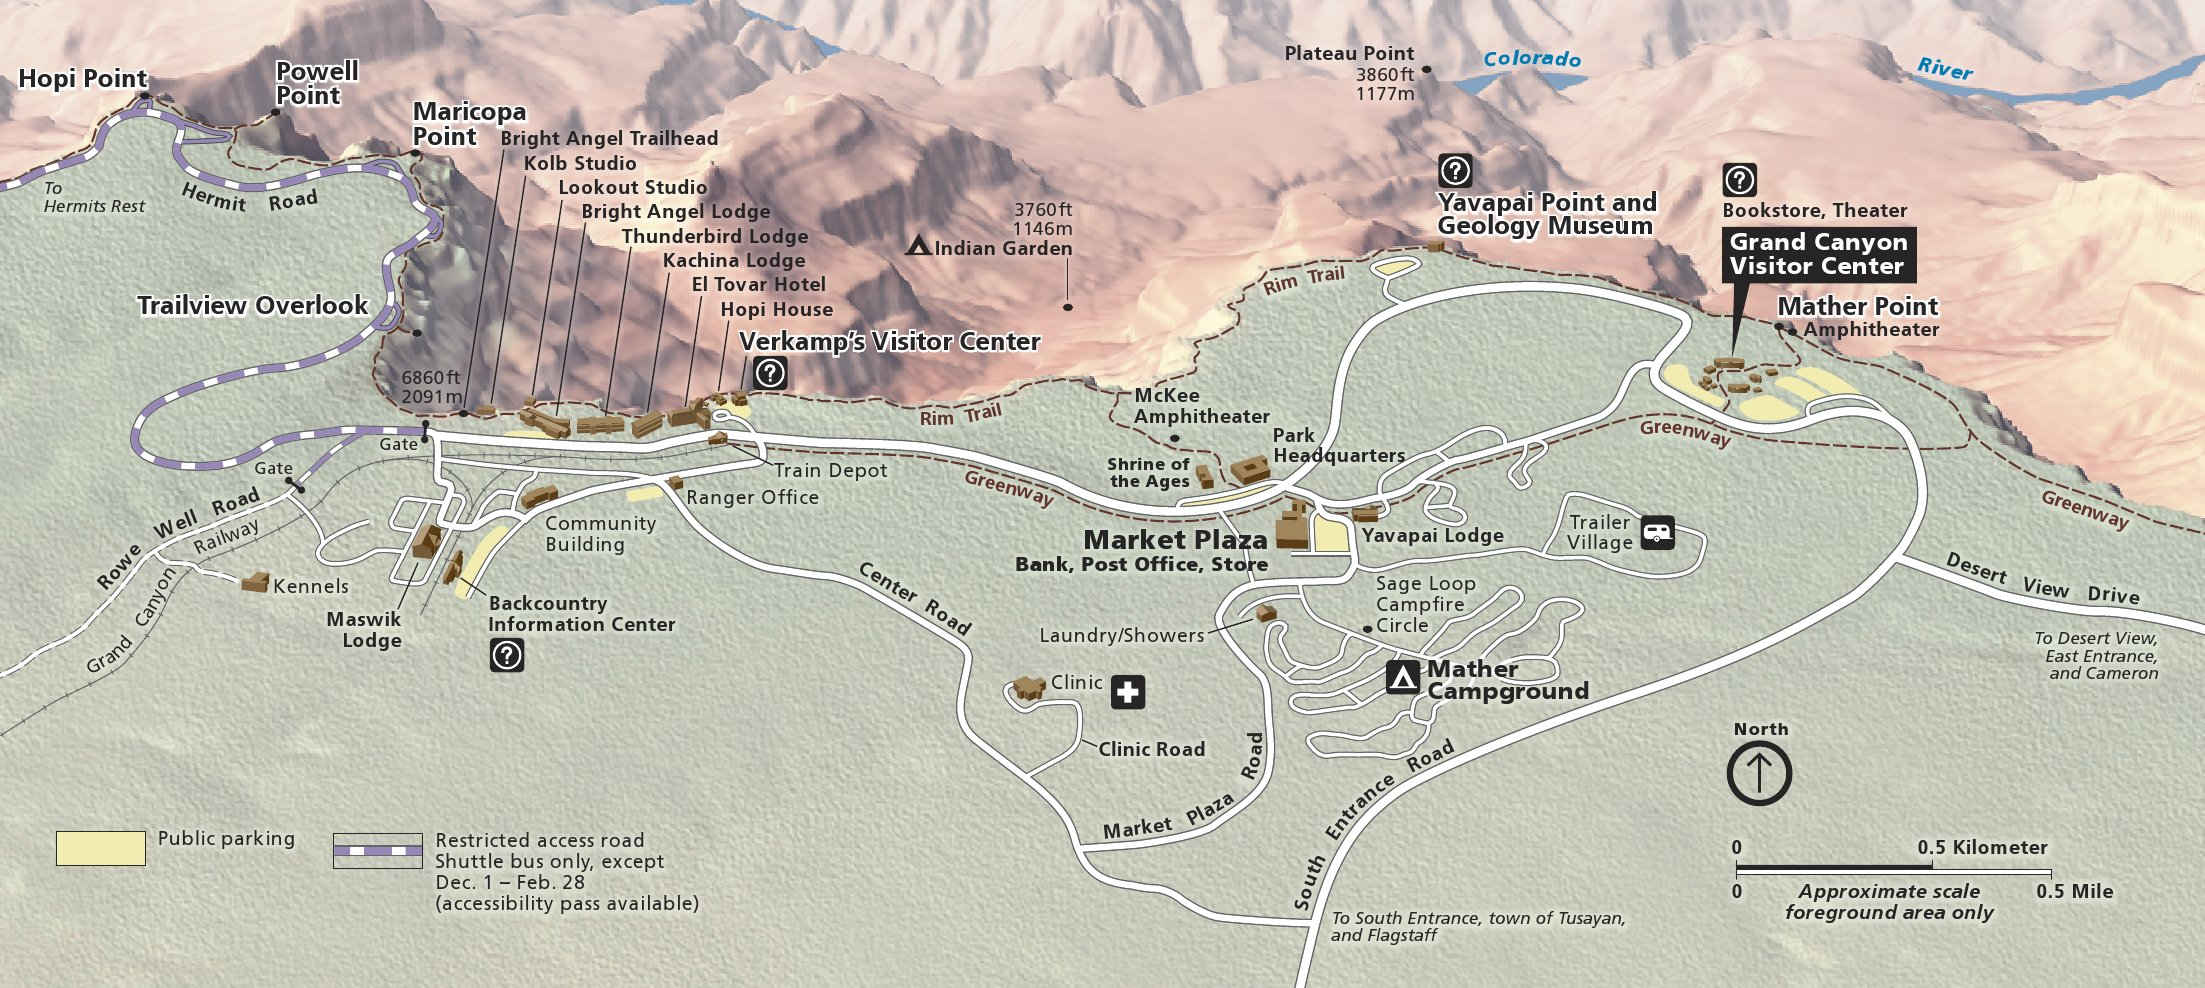 Grand Canyon Maps NPMapscom Just Free Maps Period - Las vegas grand canyon map